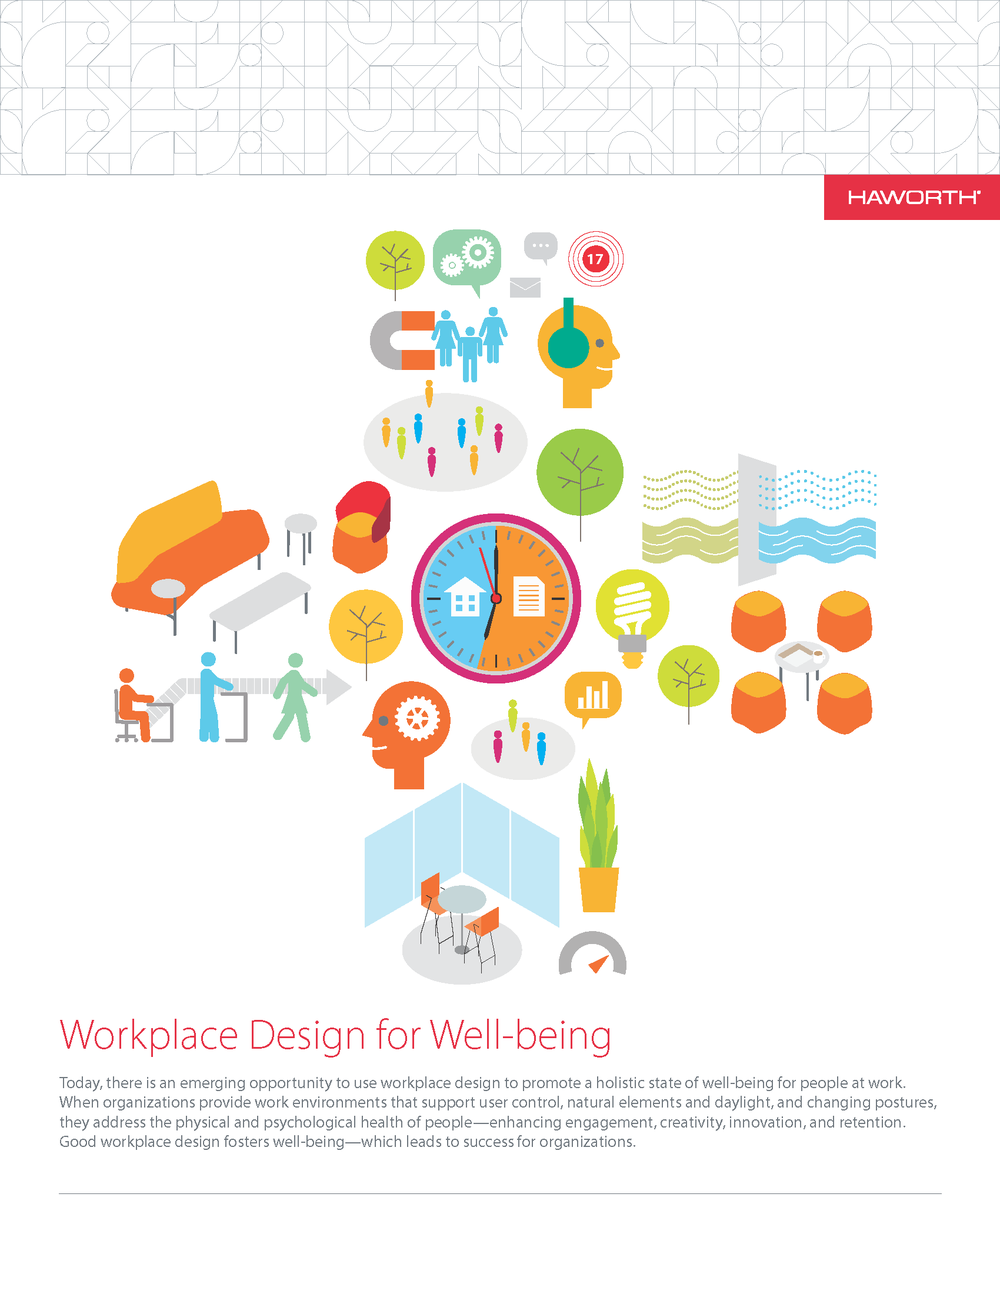 Workplace Design for Well-being: courtesy of Haworth